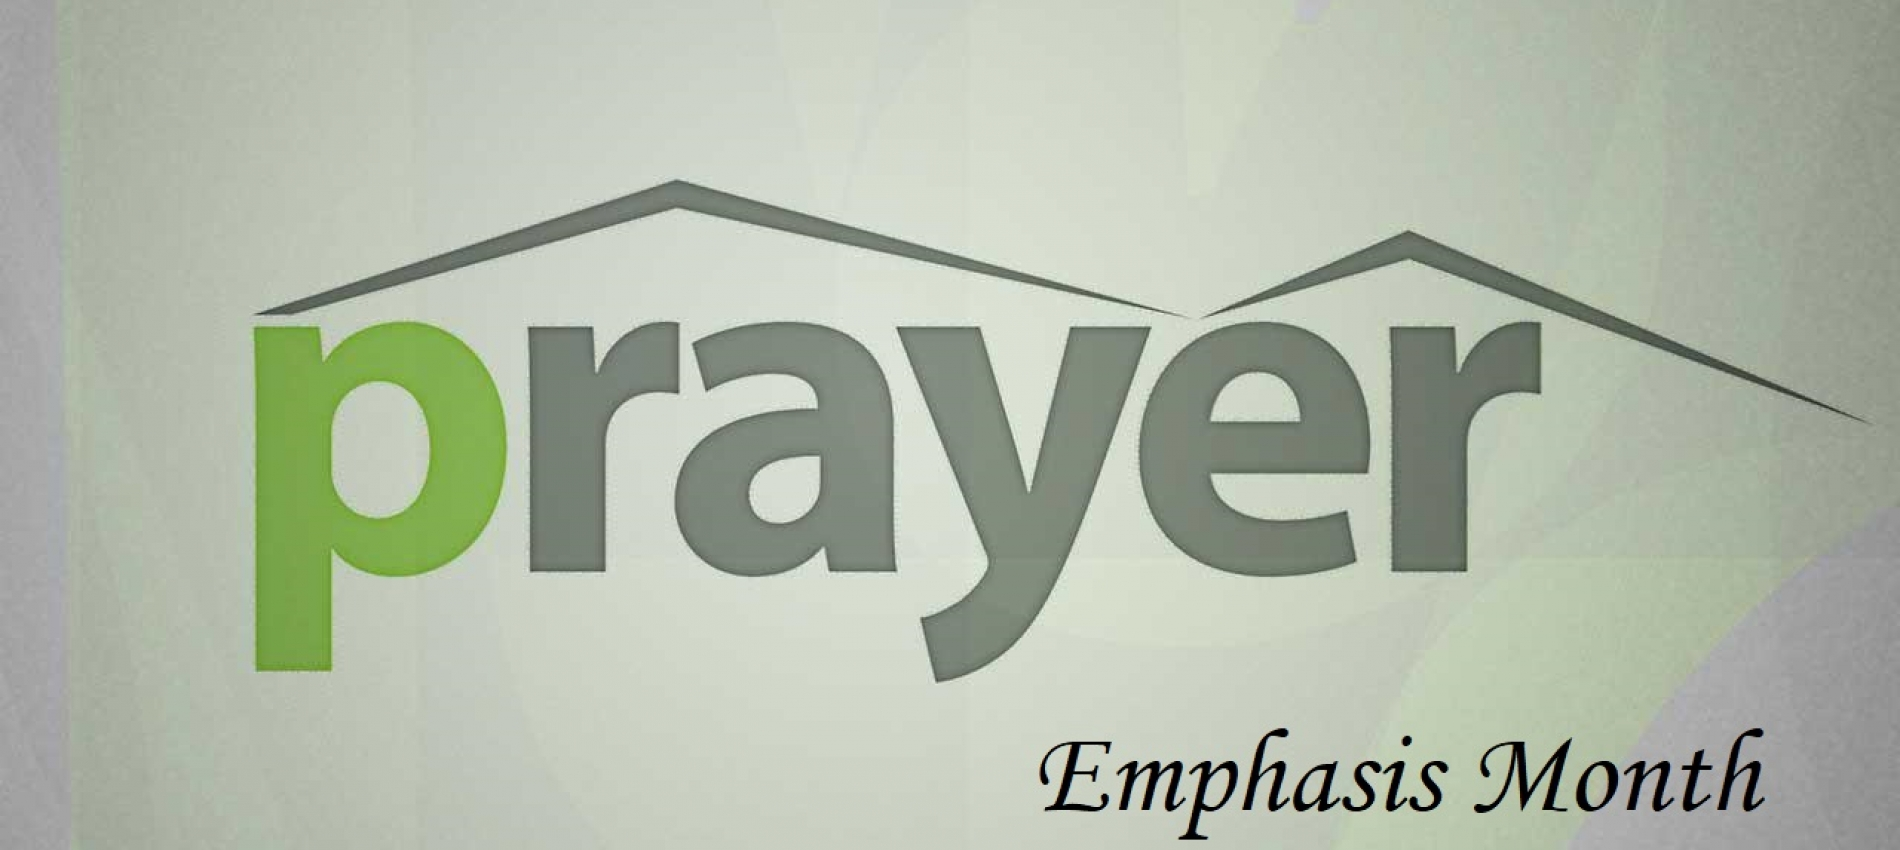 prayer emphasis